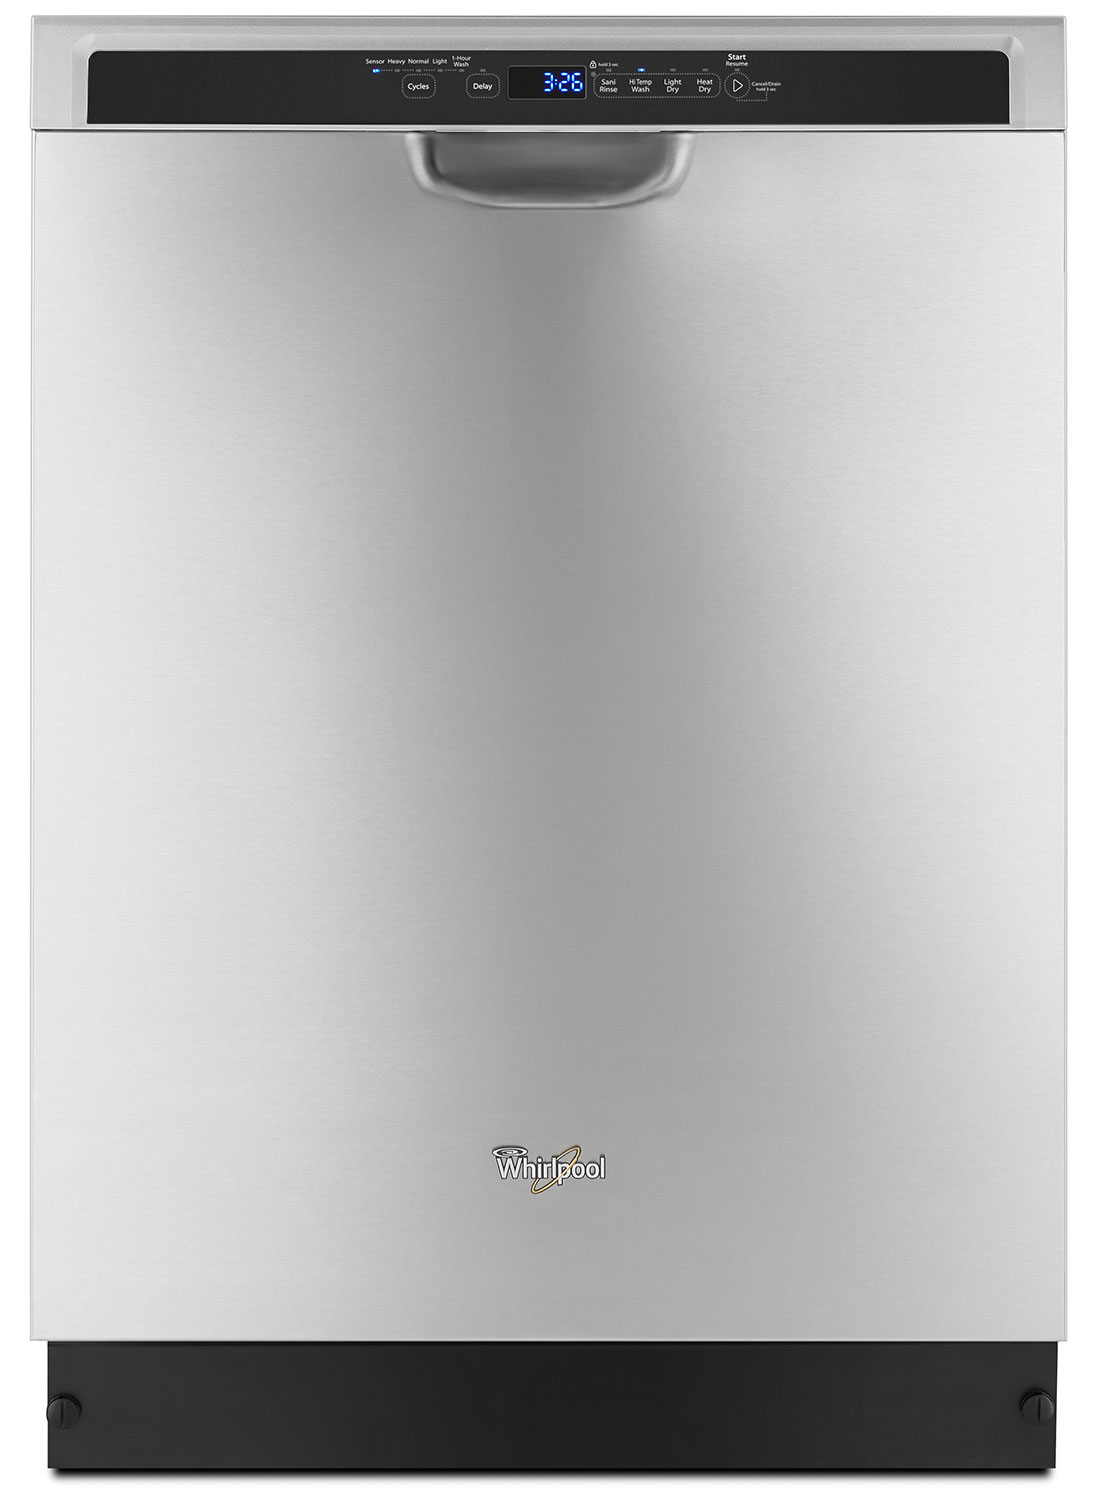 Clean-Up - Whirlpool Built-In Dishwasher – WDF560SAFM